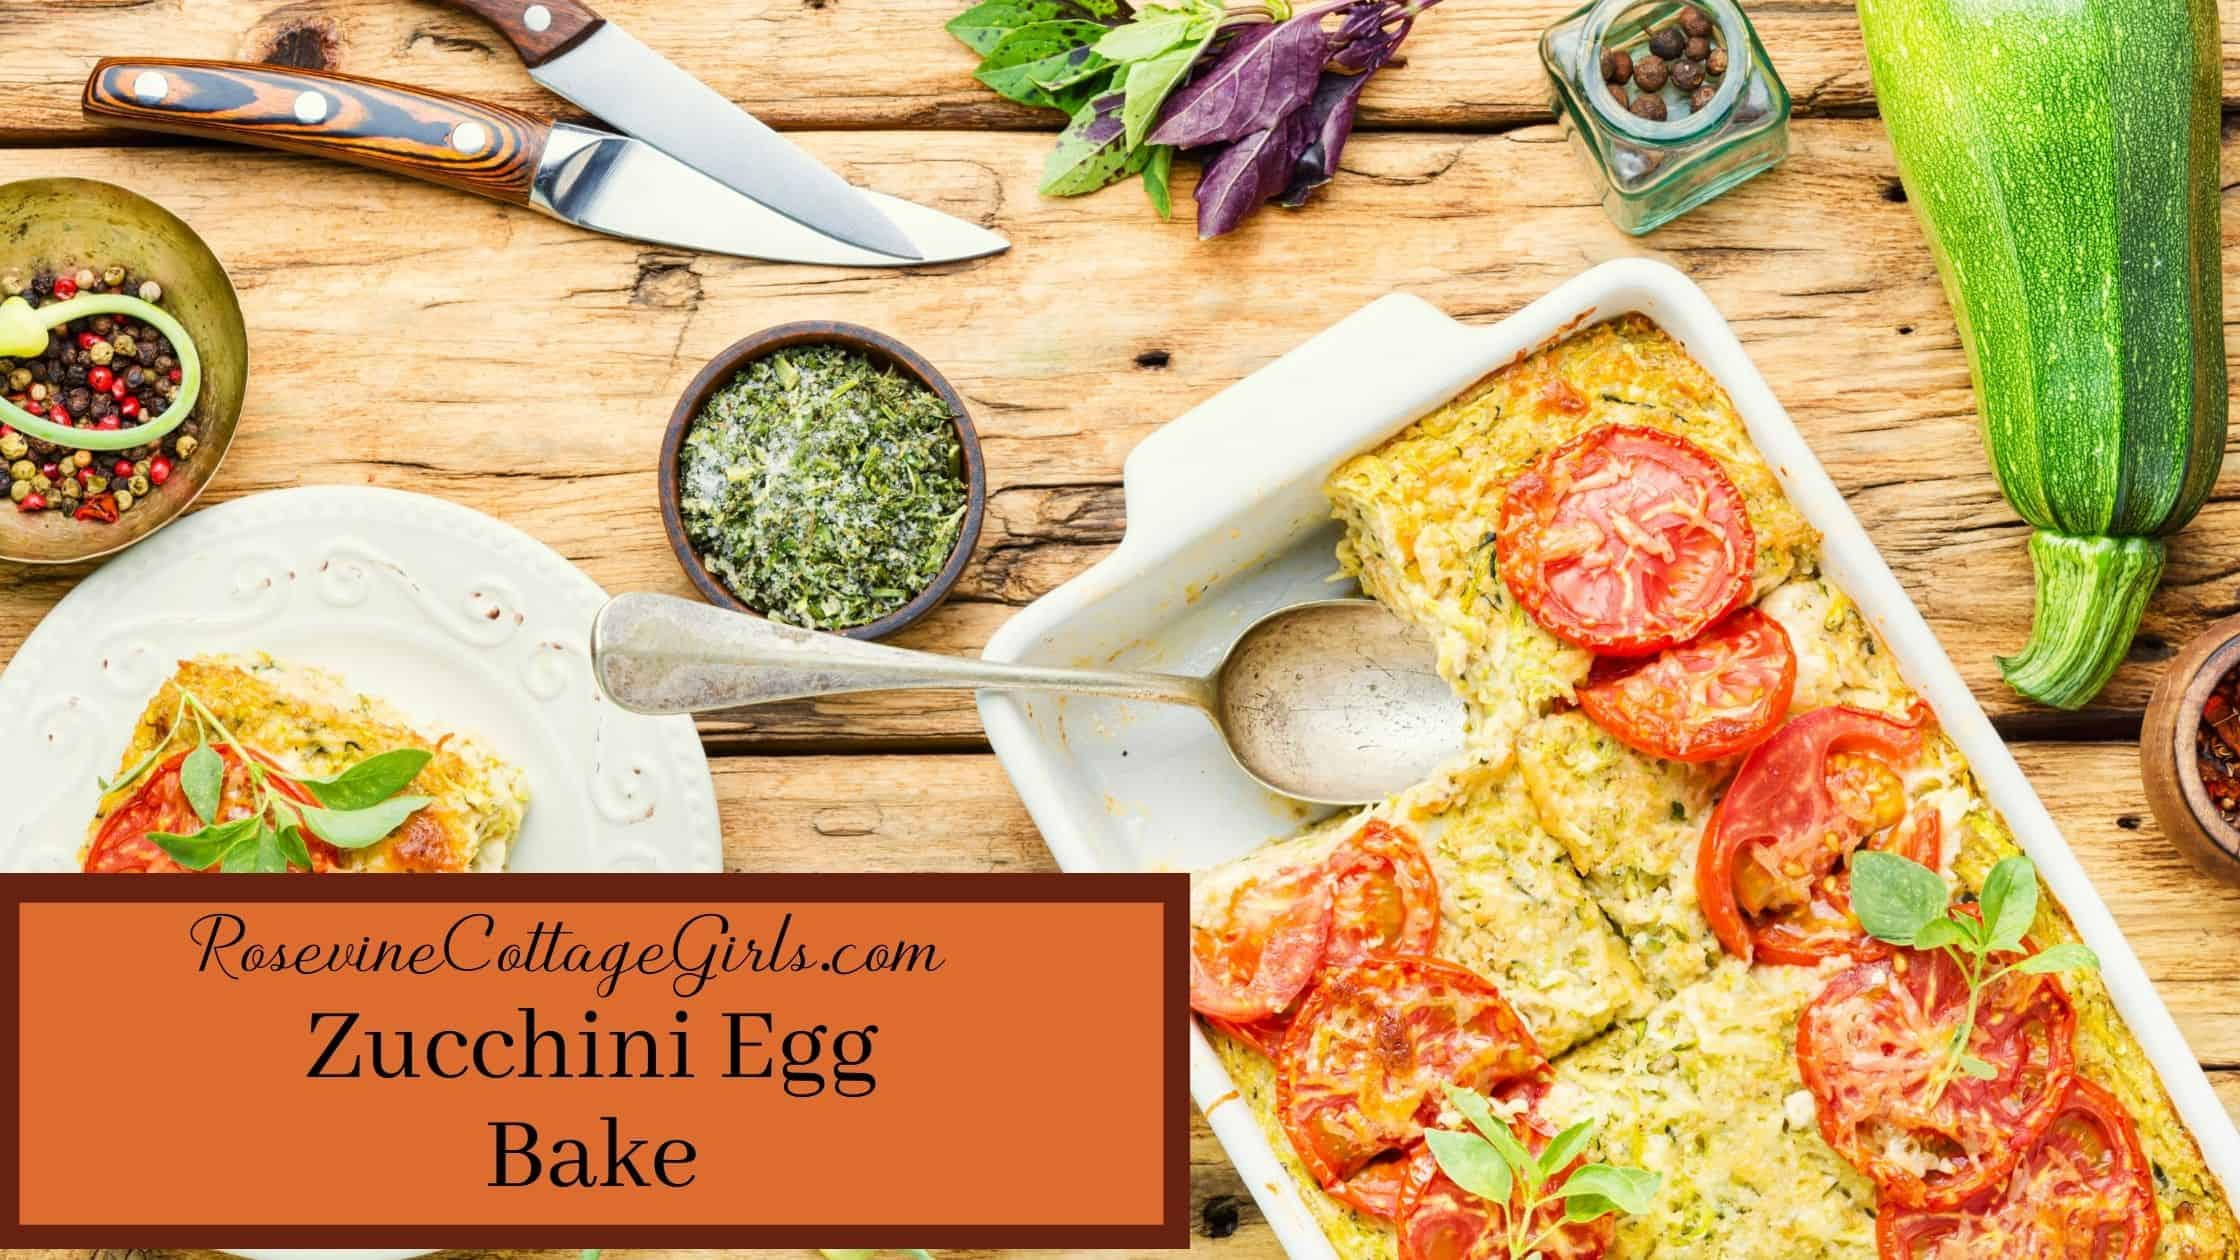 zucchini egg bake main | photo of a zucchini egg bake in a pan with ingredients around it on the table